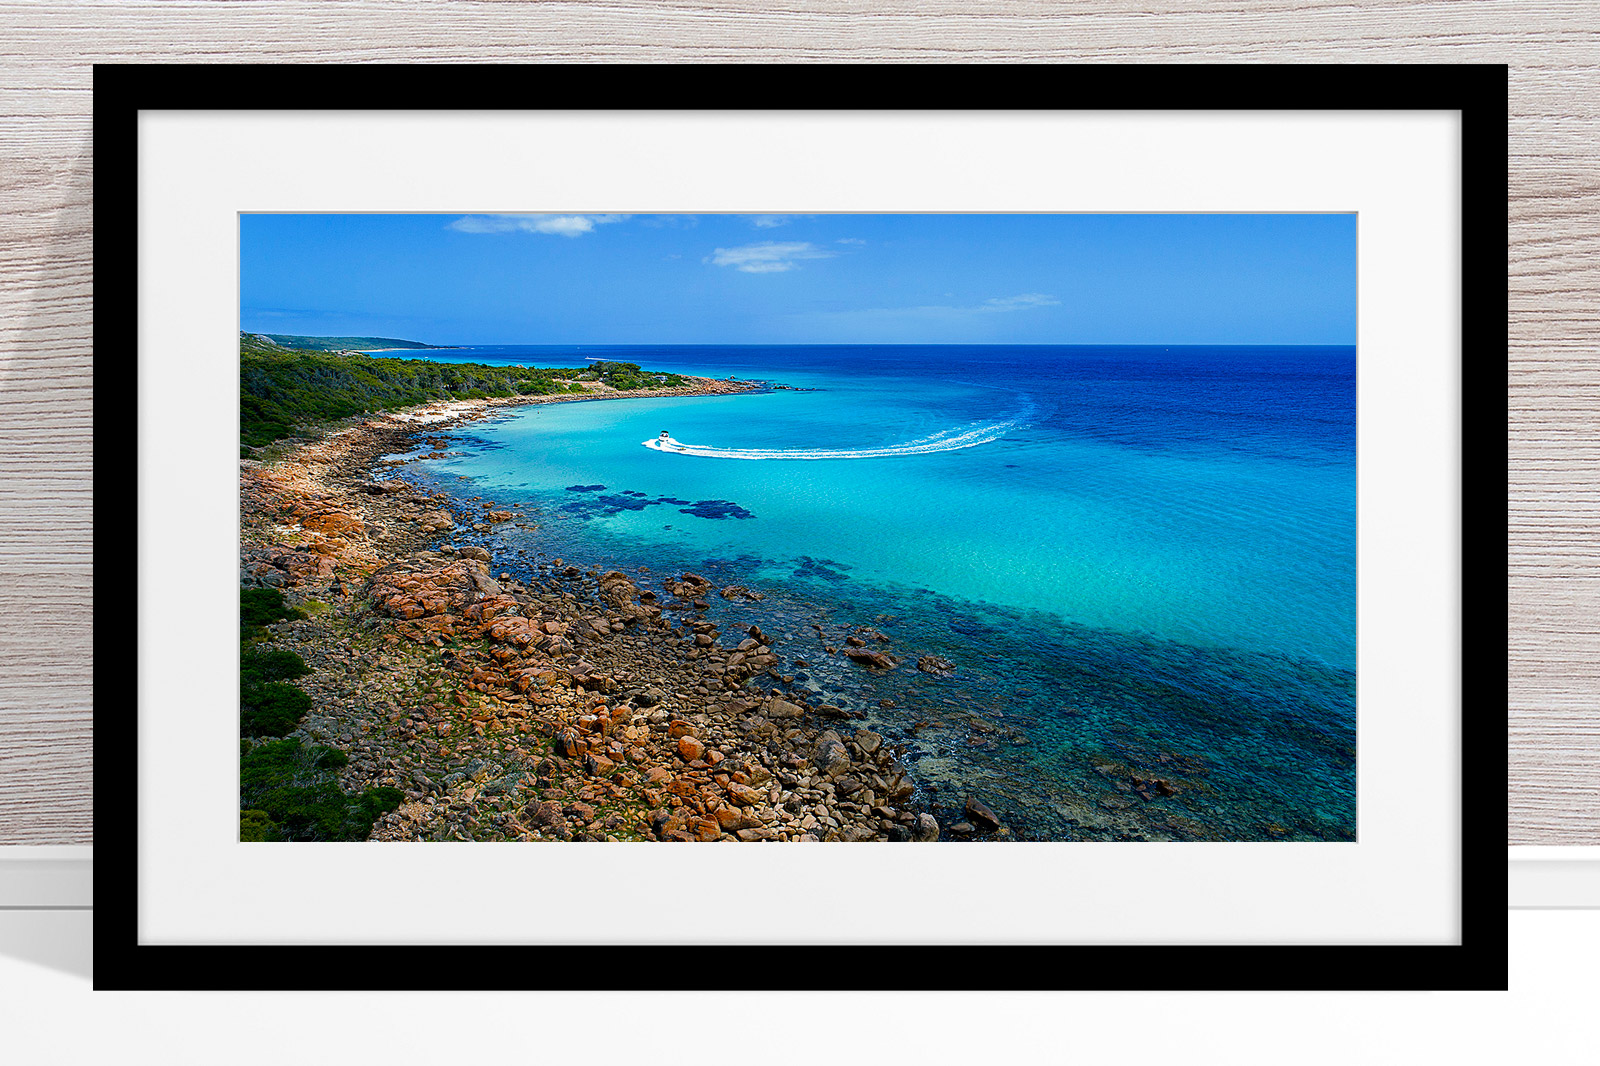 027 - Jason Mazur - 'Meelup Coastline, Dunsborough' Black Frame